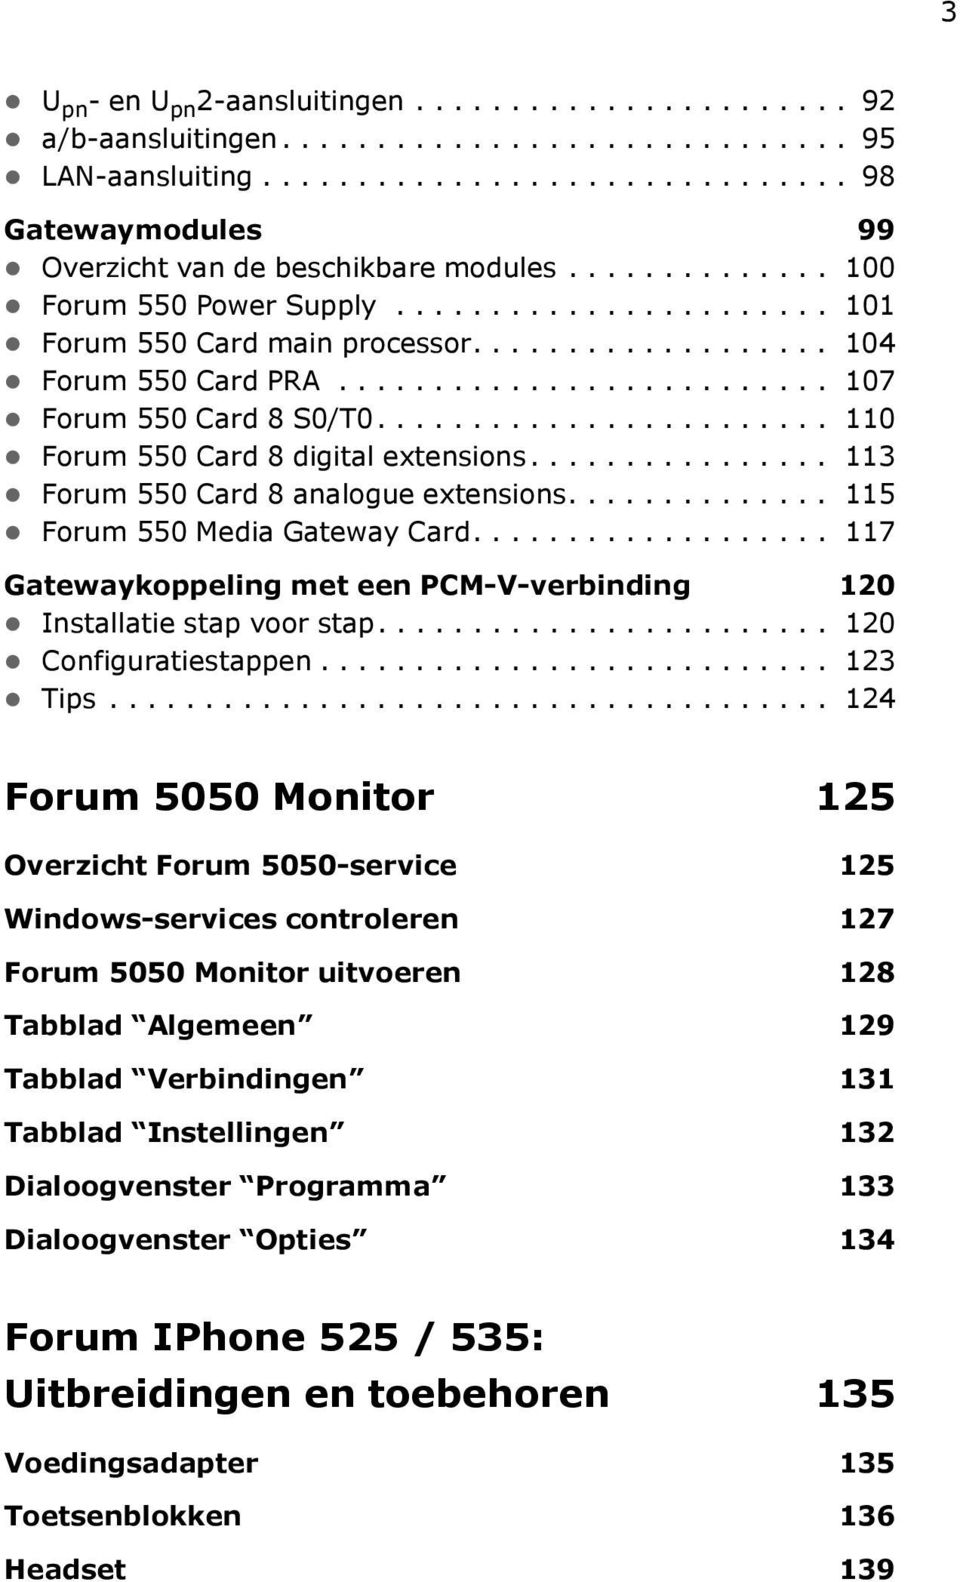 ....................... 110 Forum 550 Card 8 digital extensions................ 113 Forum 550 Card 8 analogue extensions.............. 115 Forum 550 Media Gateway Card.